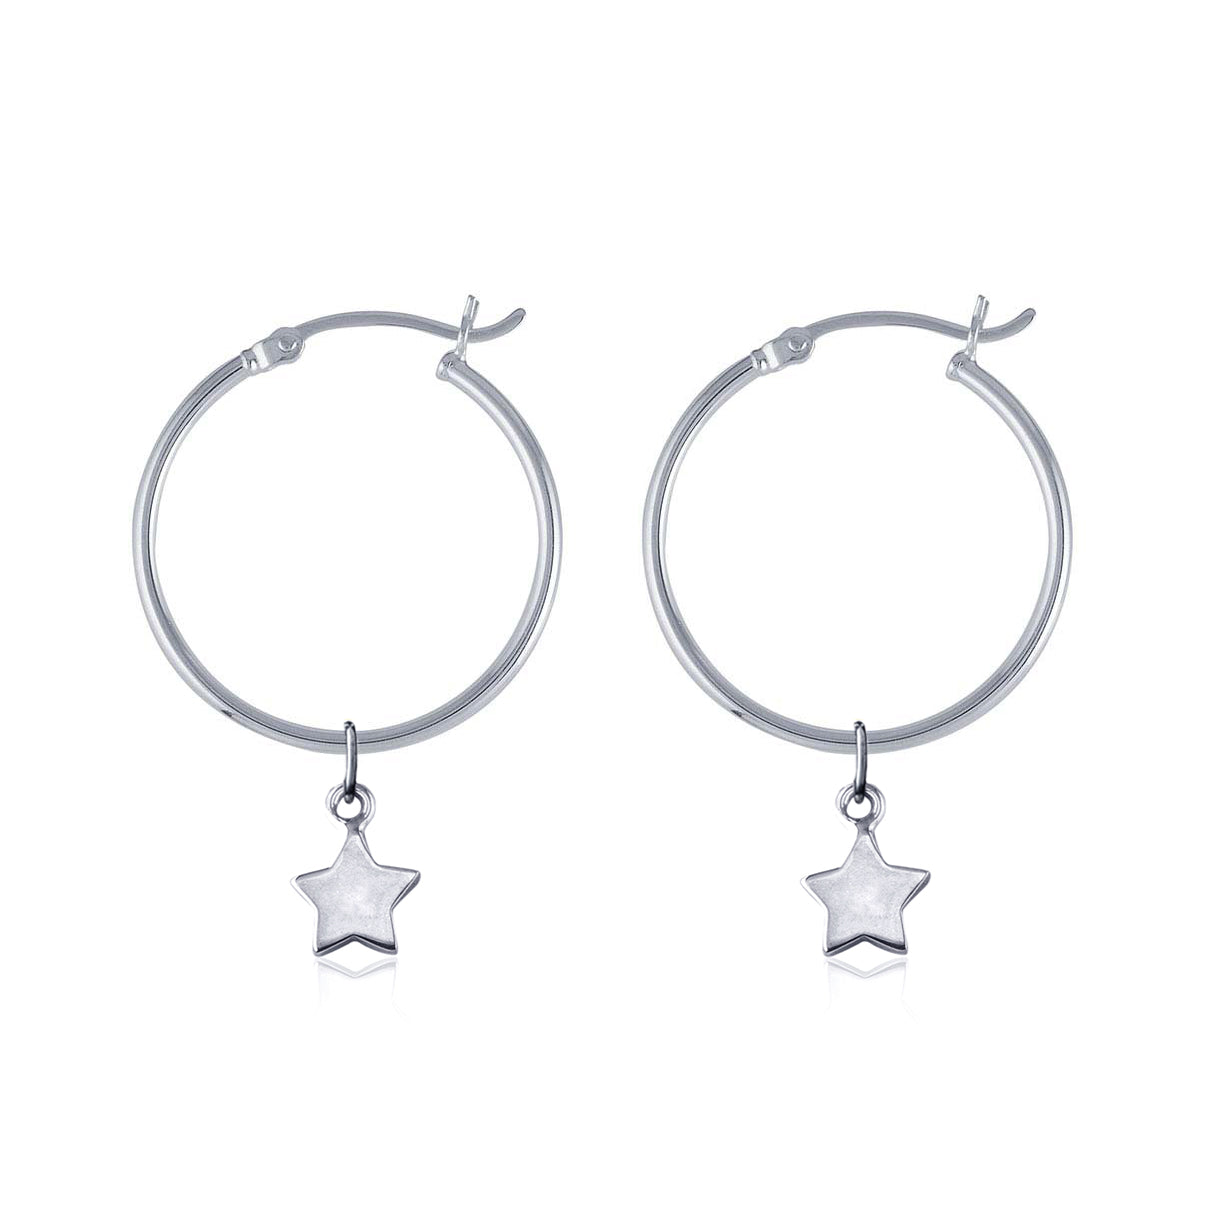 Hoop Earrings - Wish Upon a Star (Silver)